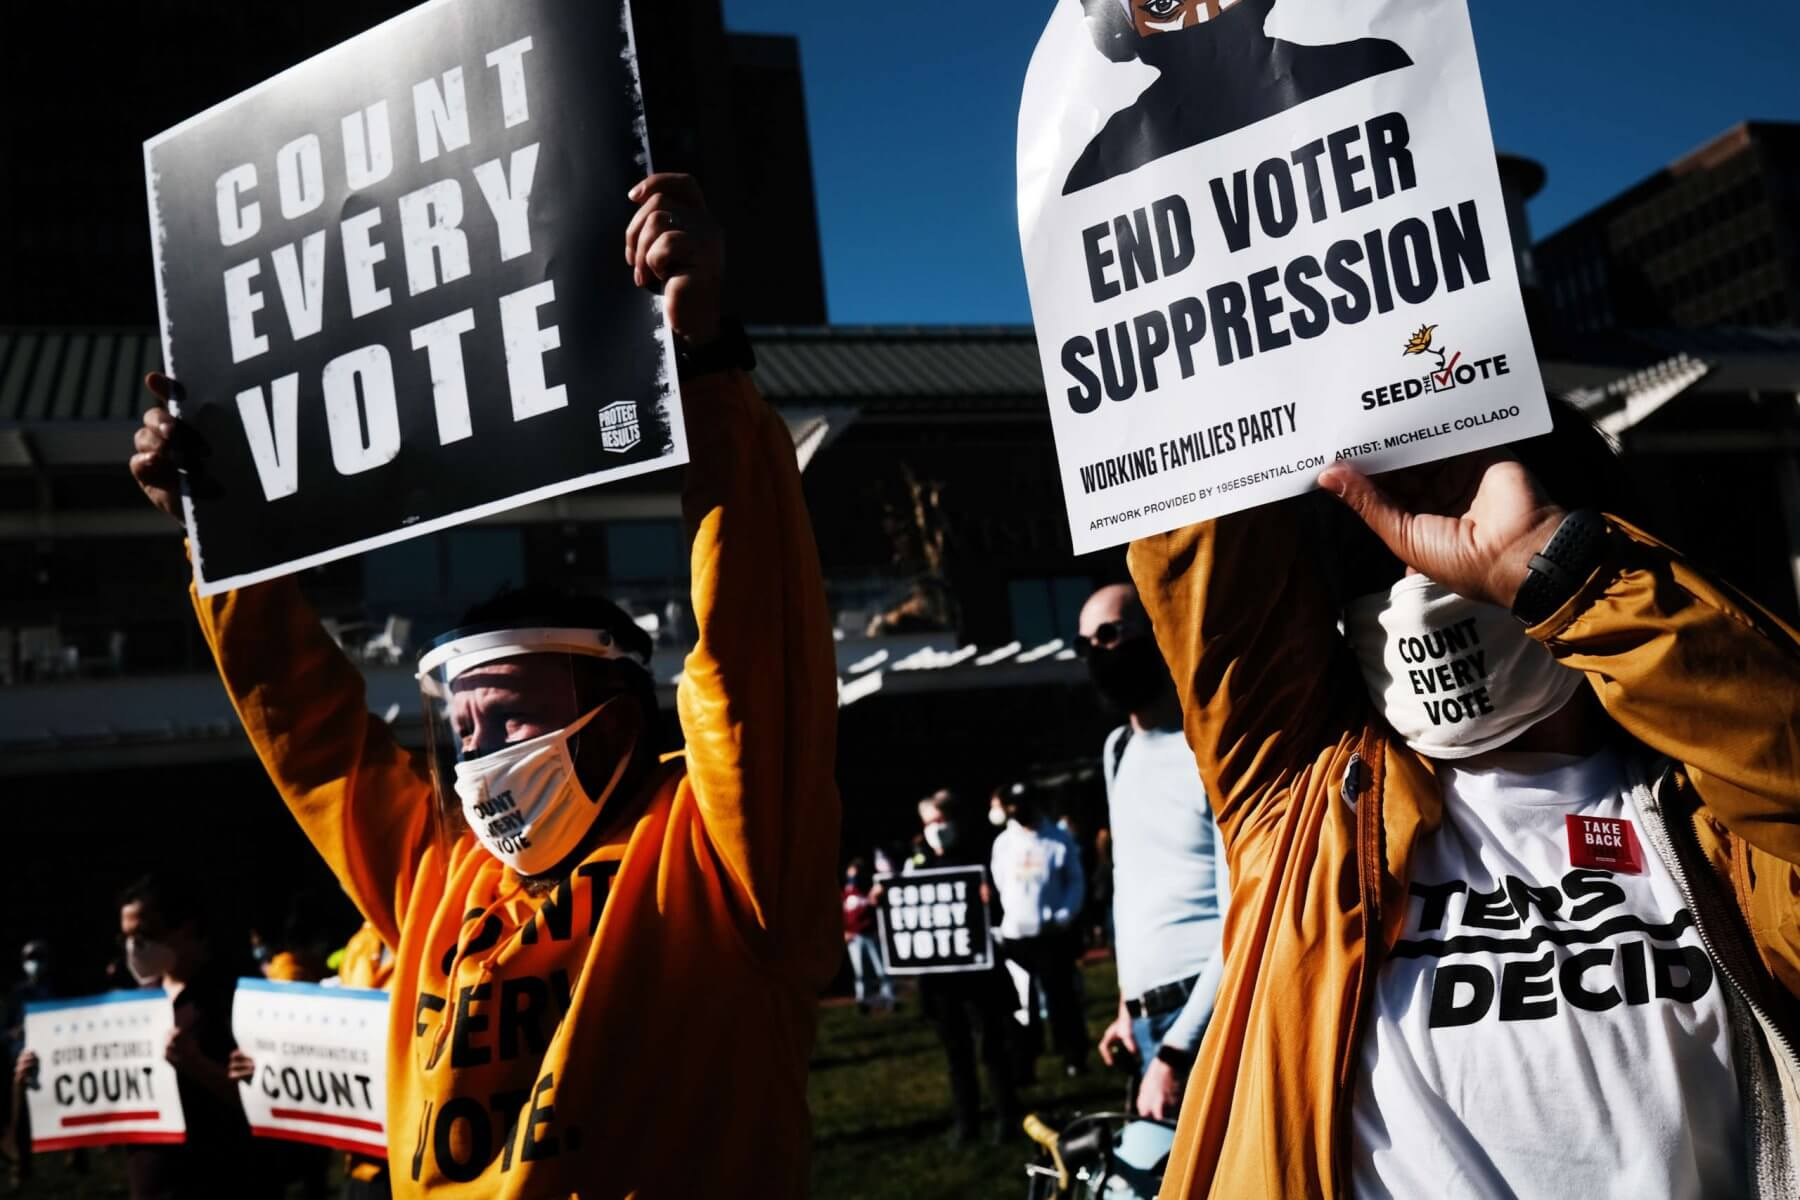 Georgia Voter Suppression A Warning to Country